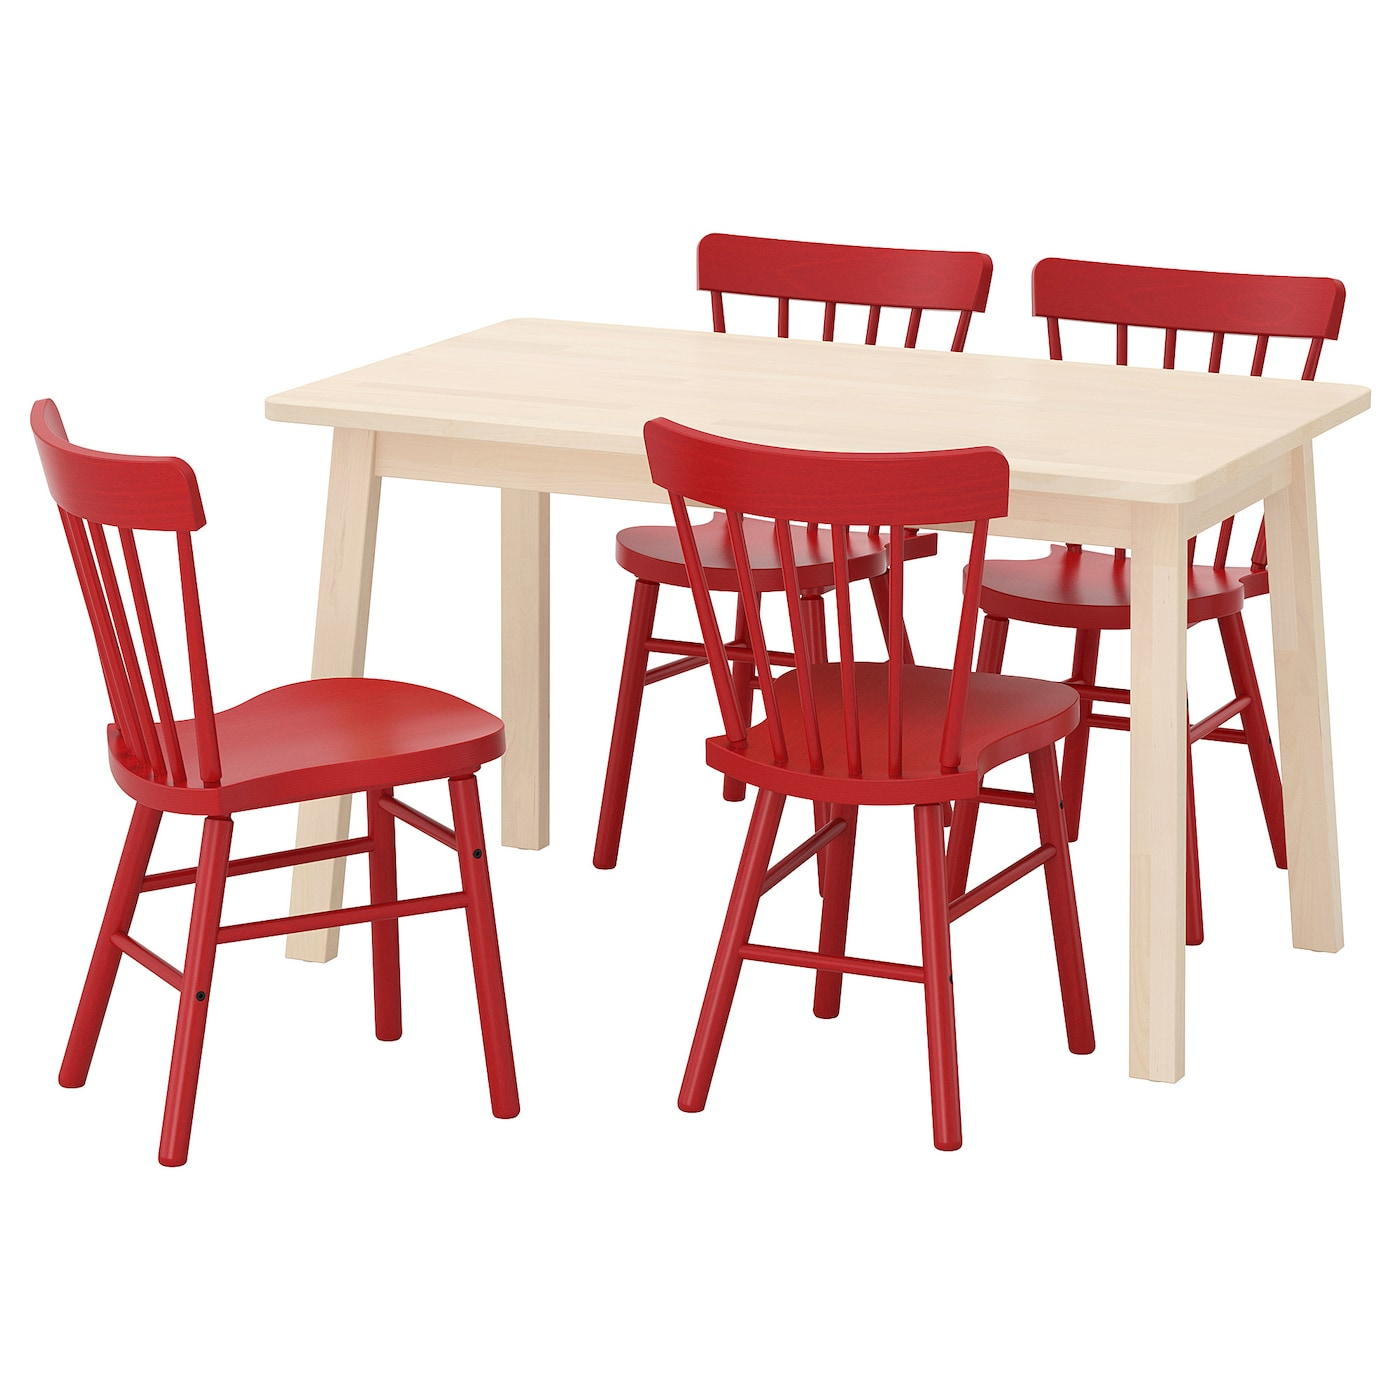 ker-norraryd-table-and-4-chairs__0721790_PE733381_S5